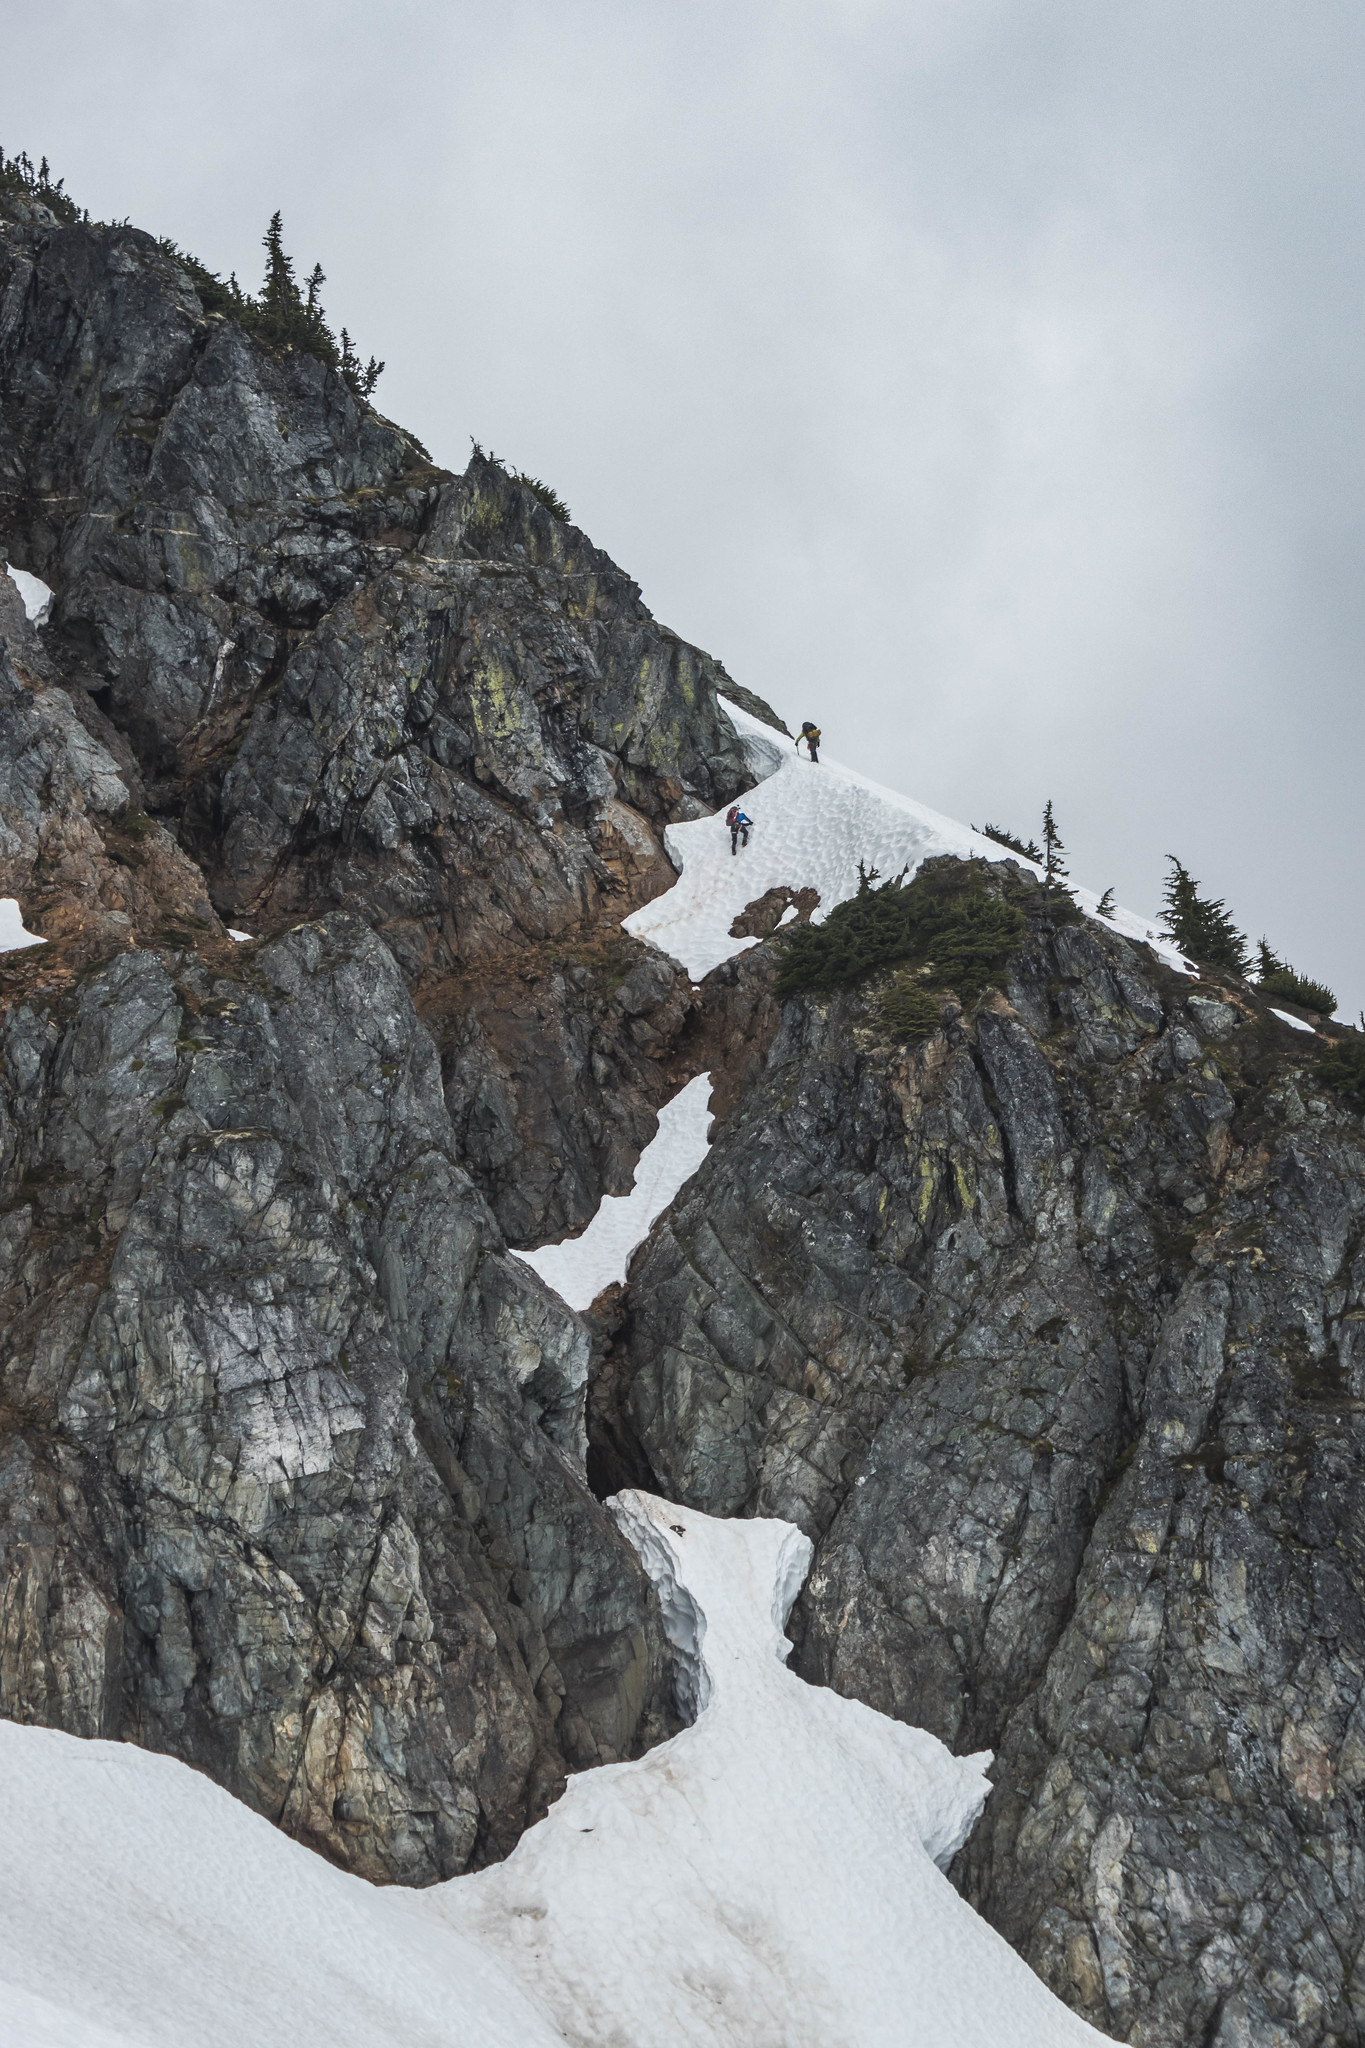 Climbers exiting the Red Ledge